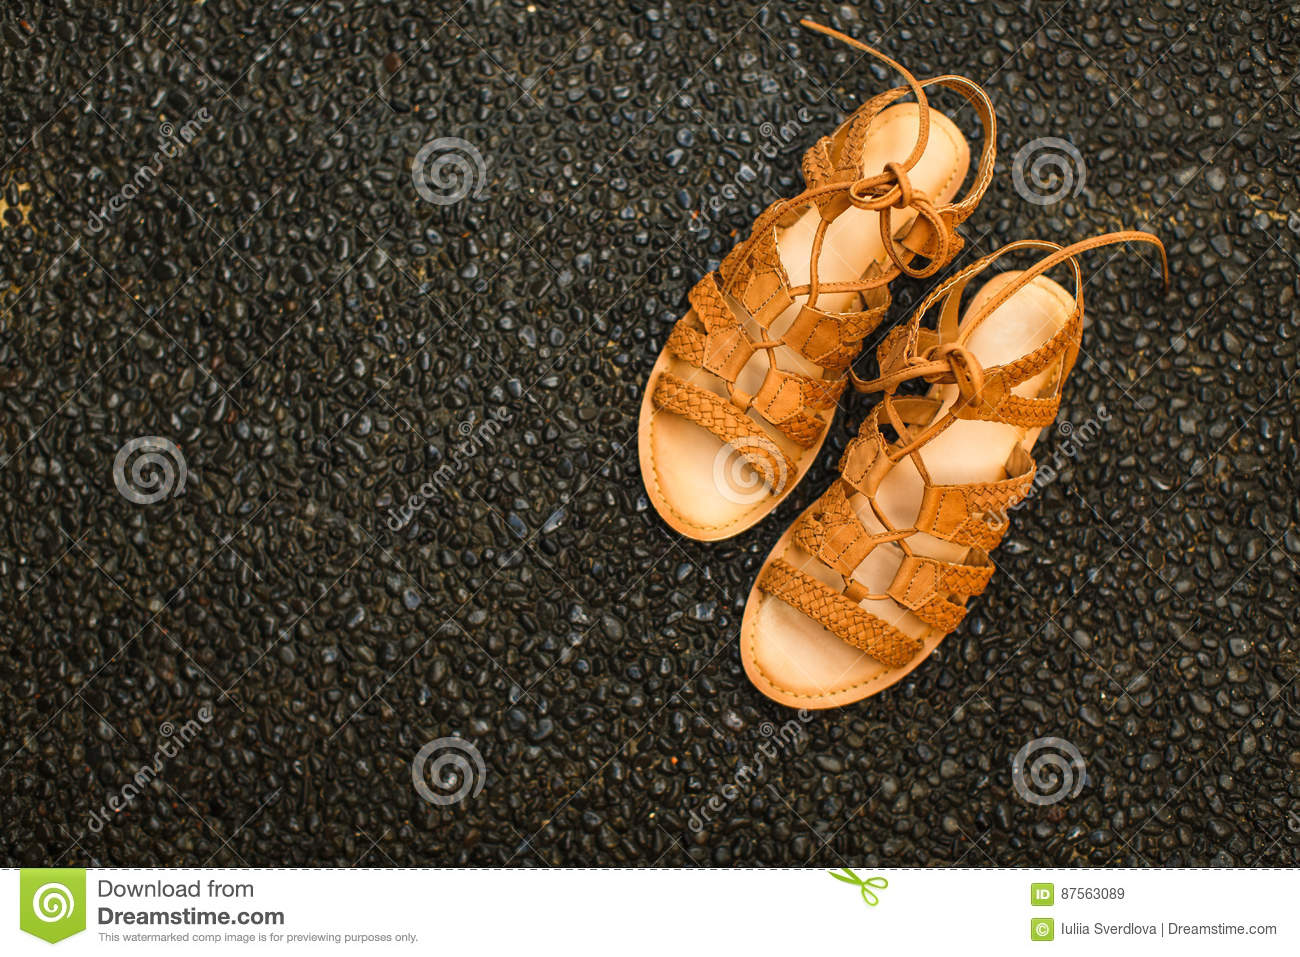 Vacation concept: Summer sandals